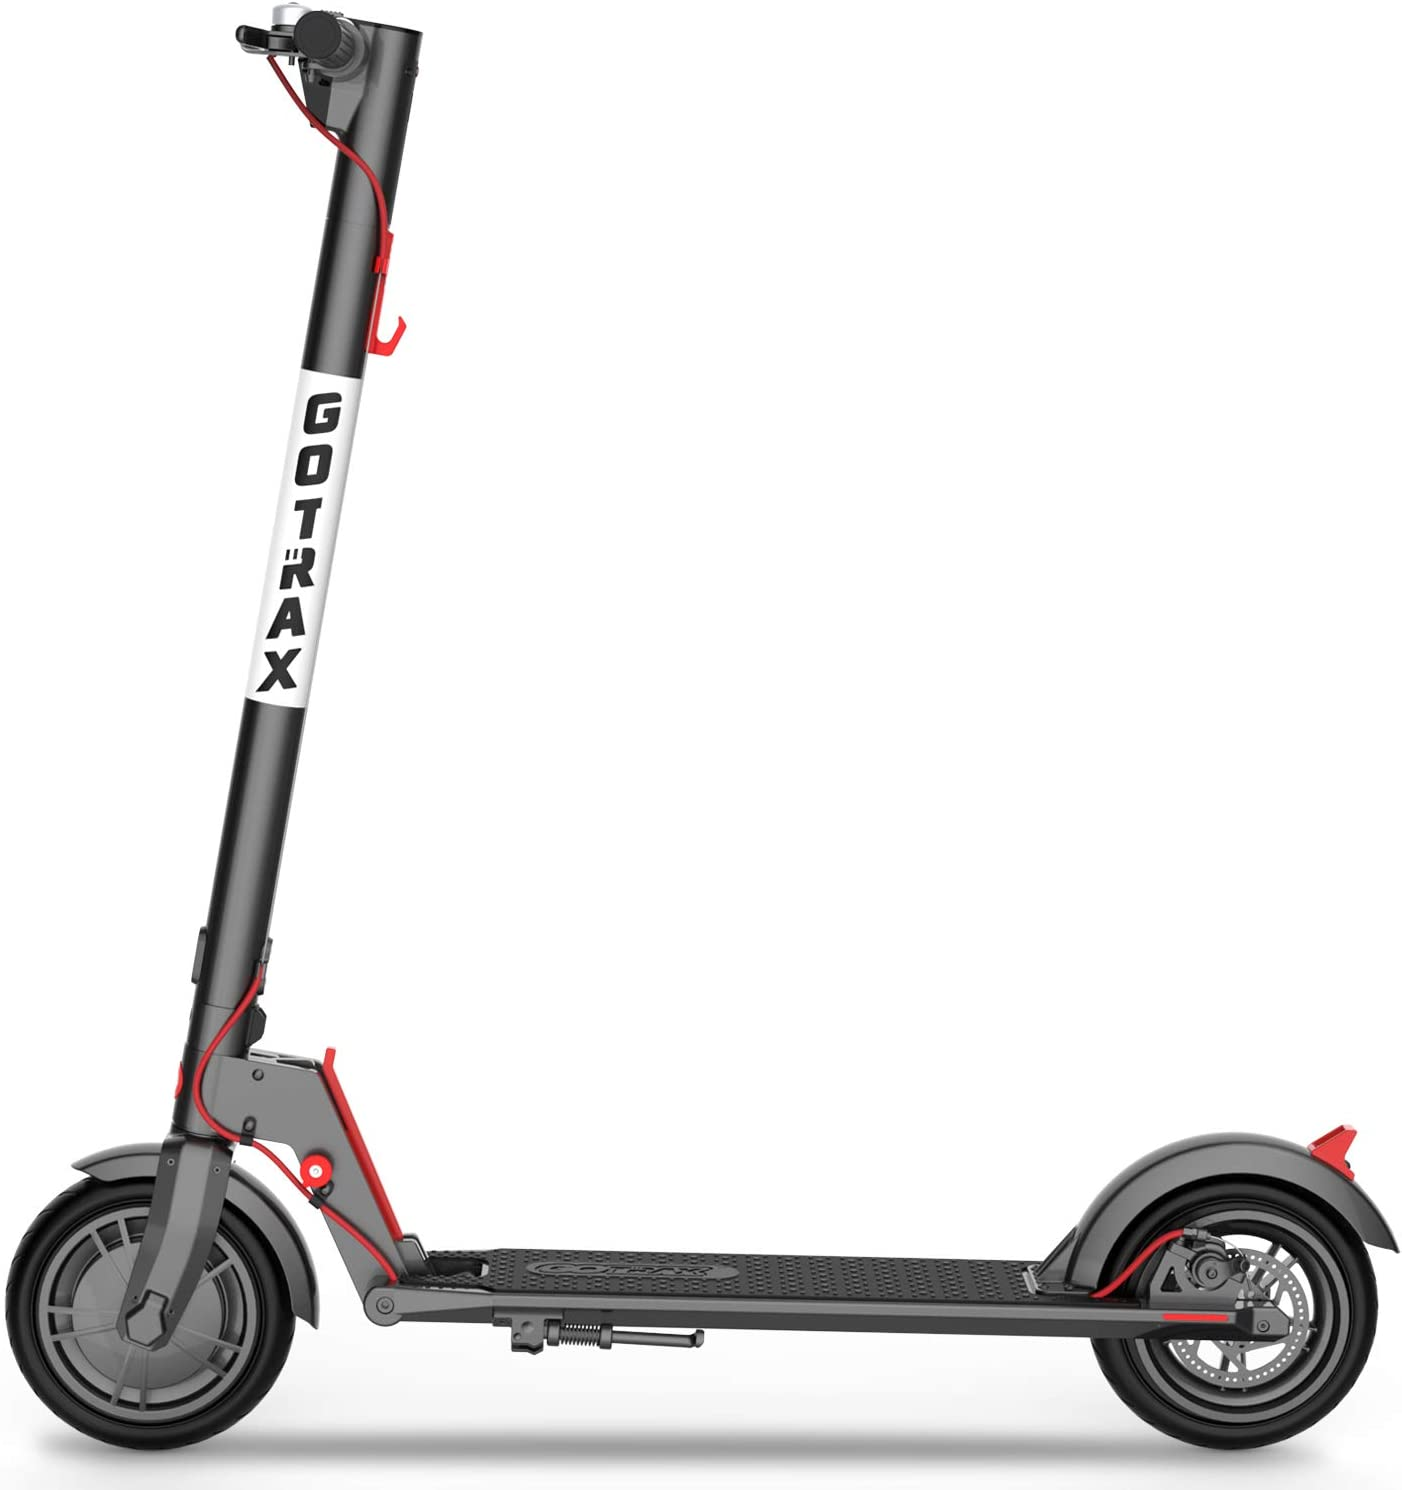 "Amazon.com : GOTRAX GXL V2 Commuting Electric Scooter - 8.5"" Air Filled Tires - 15.5MPH & 9-12 Mile Range - Version 2 (Black) : Sports & Outdoors"